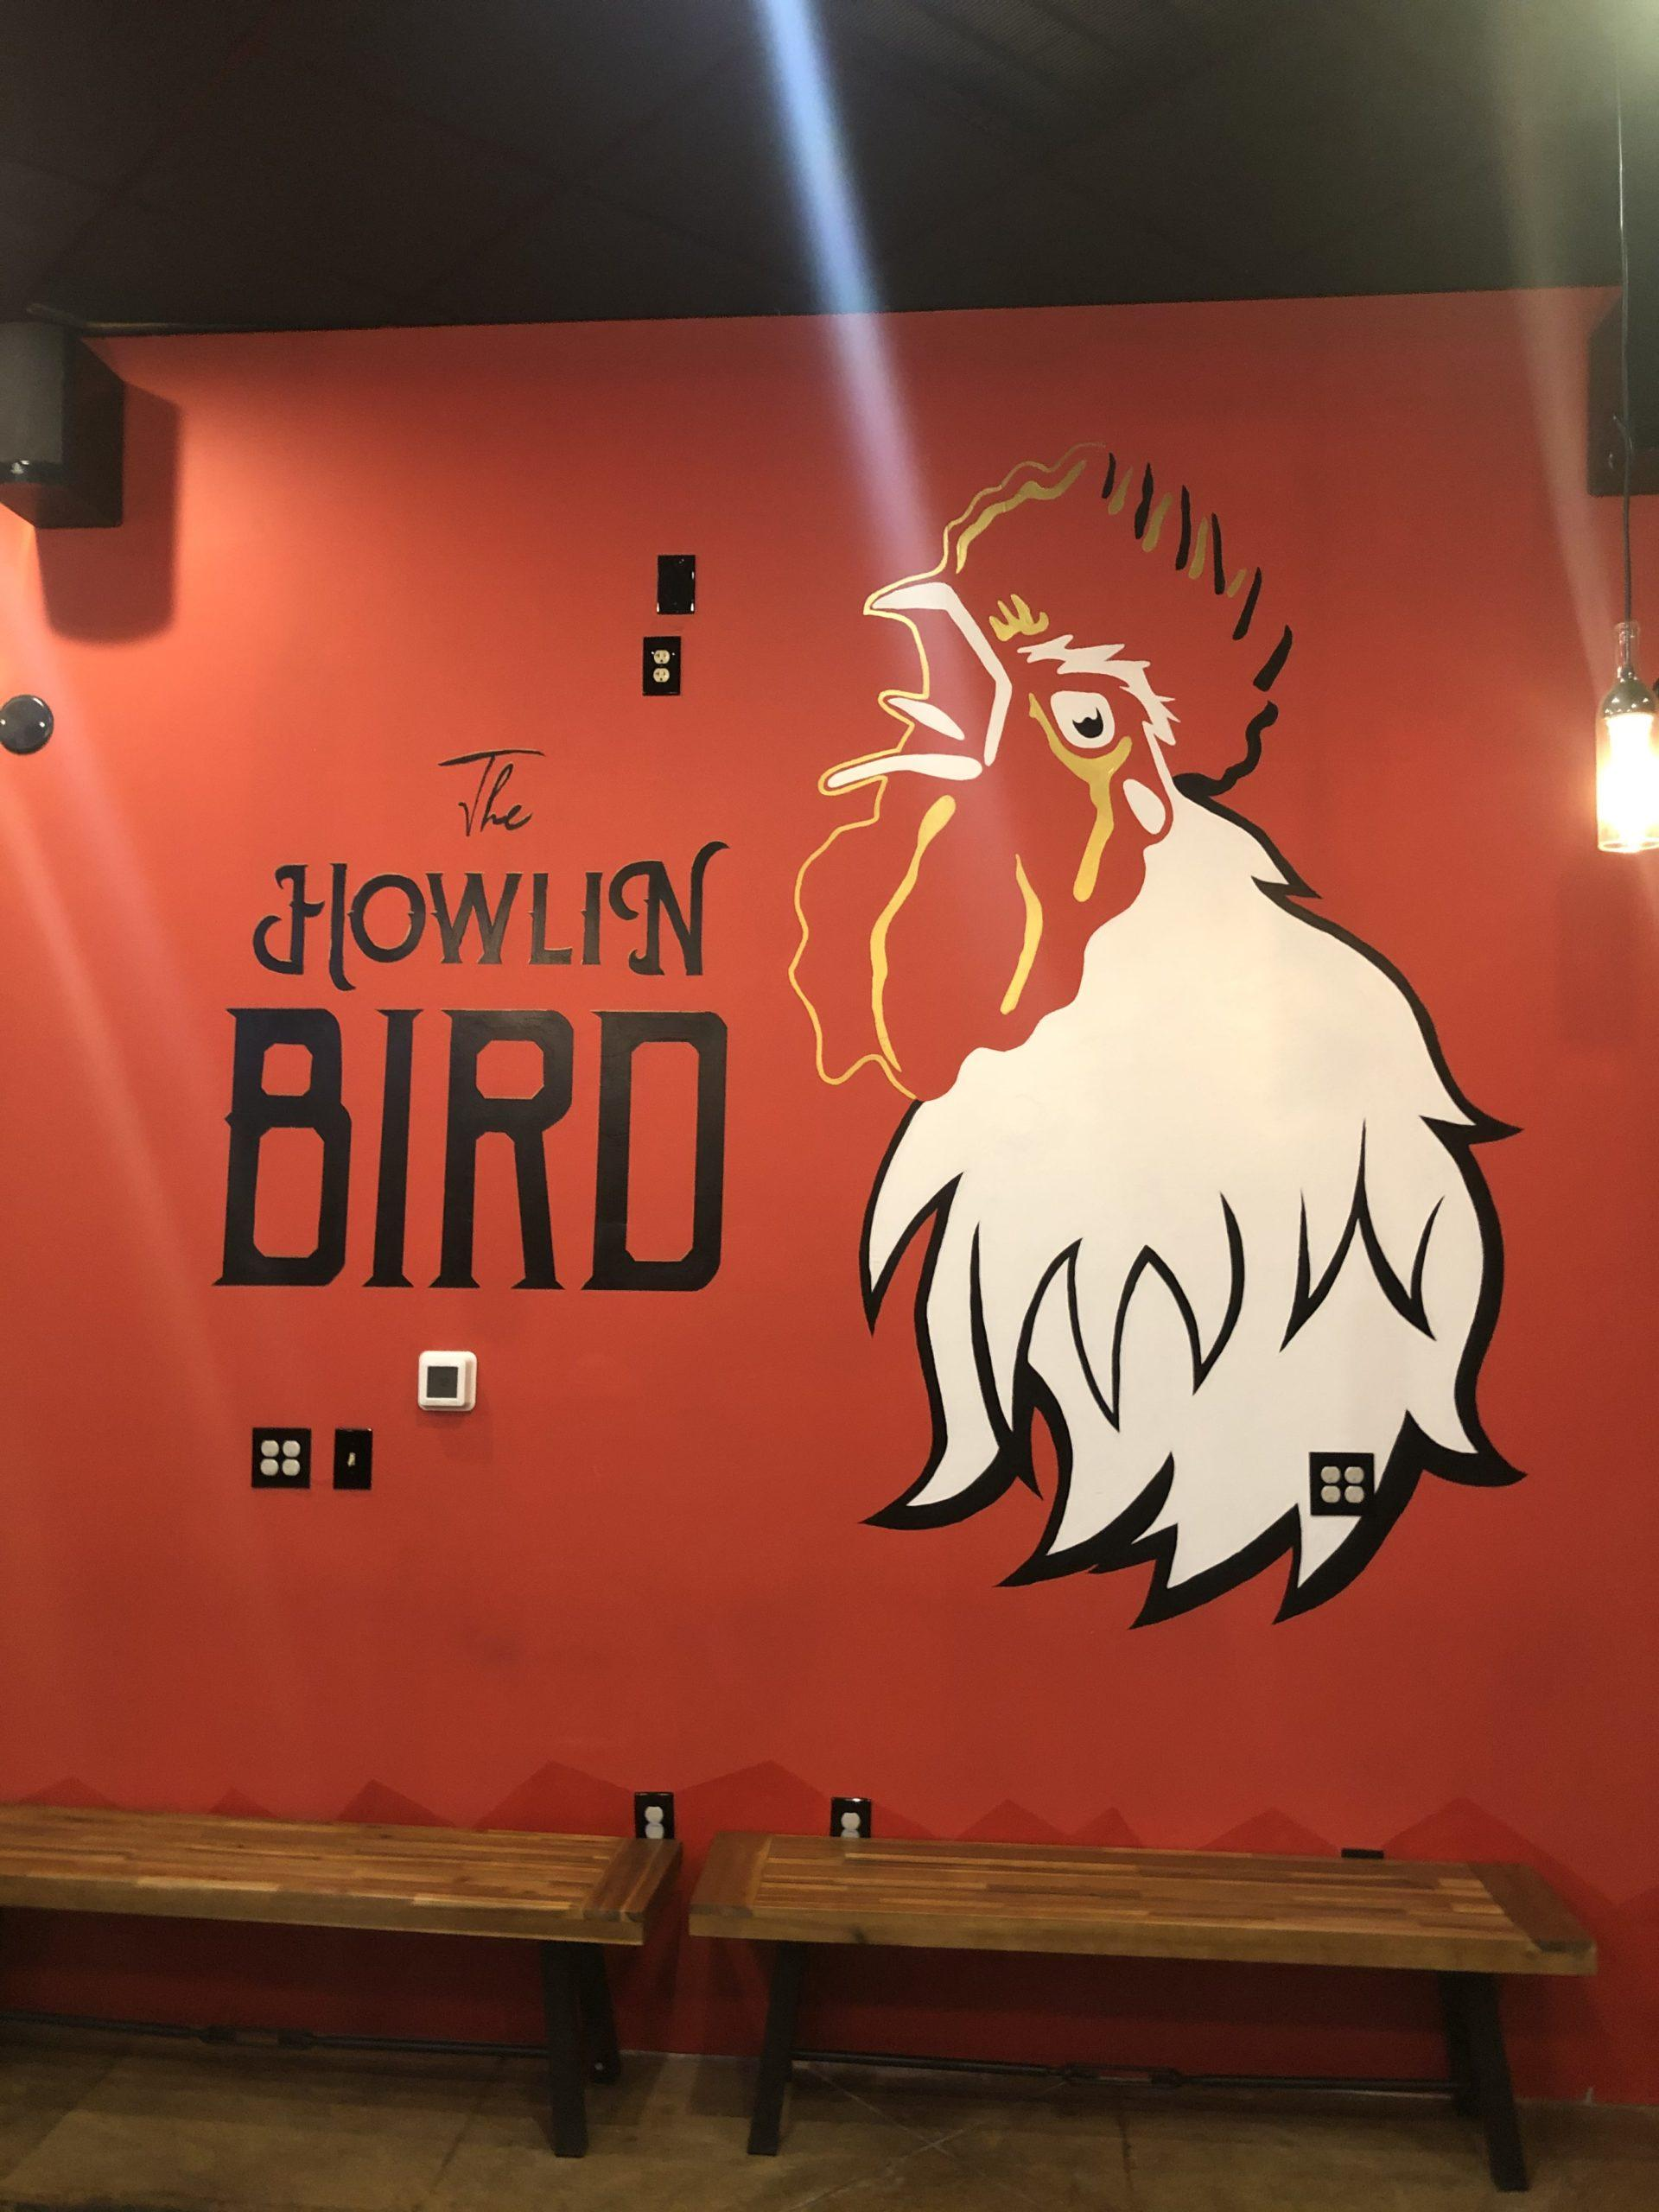 We+tried+it+for+you%3A+The+Howlin+Bird